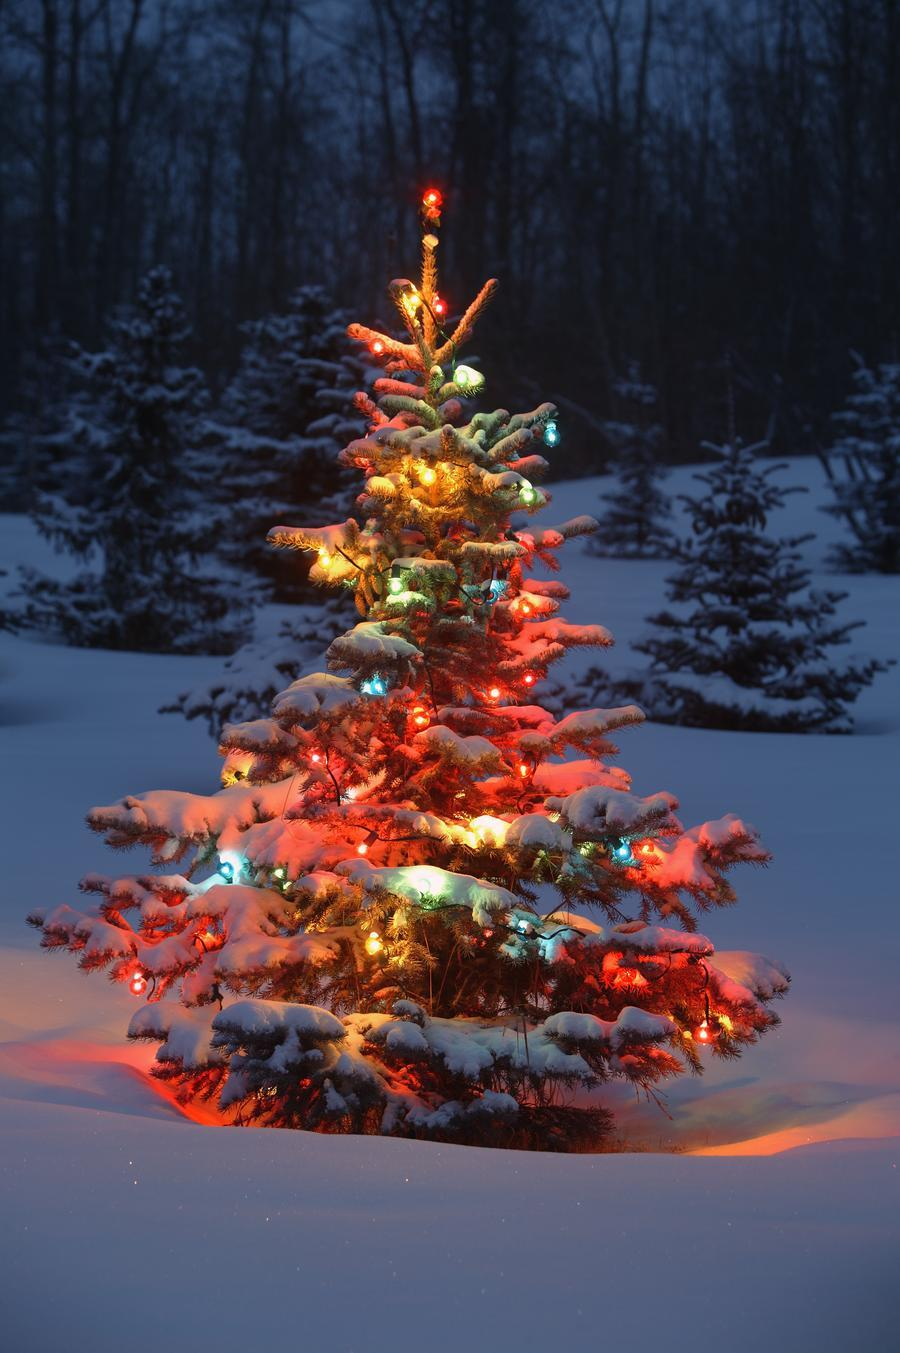 Christmas Tree With Lights Outdoors In The Forest  Print